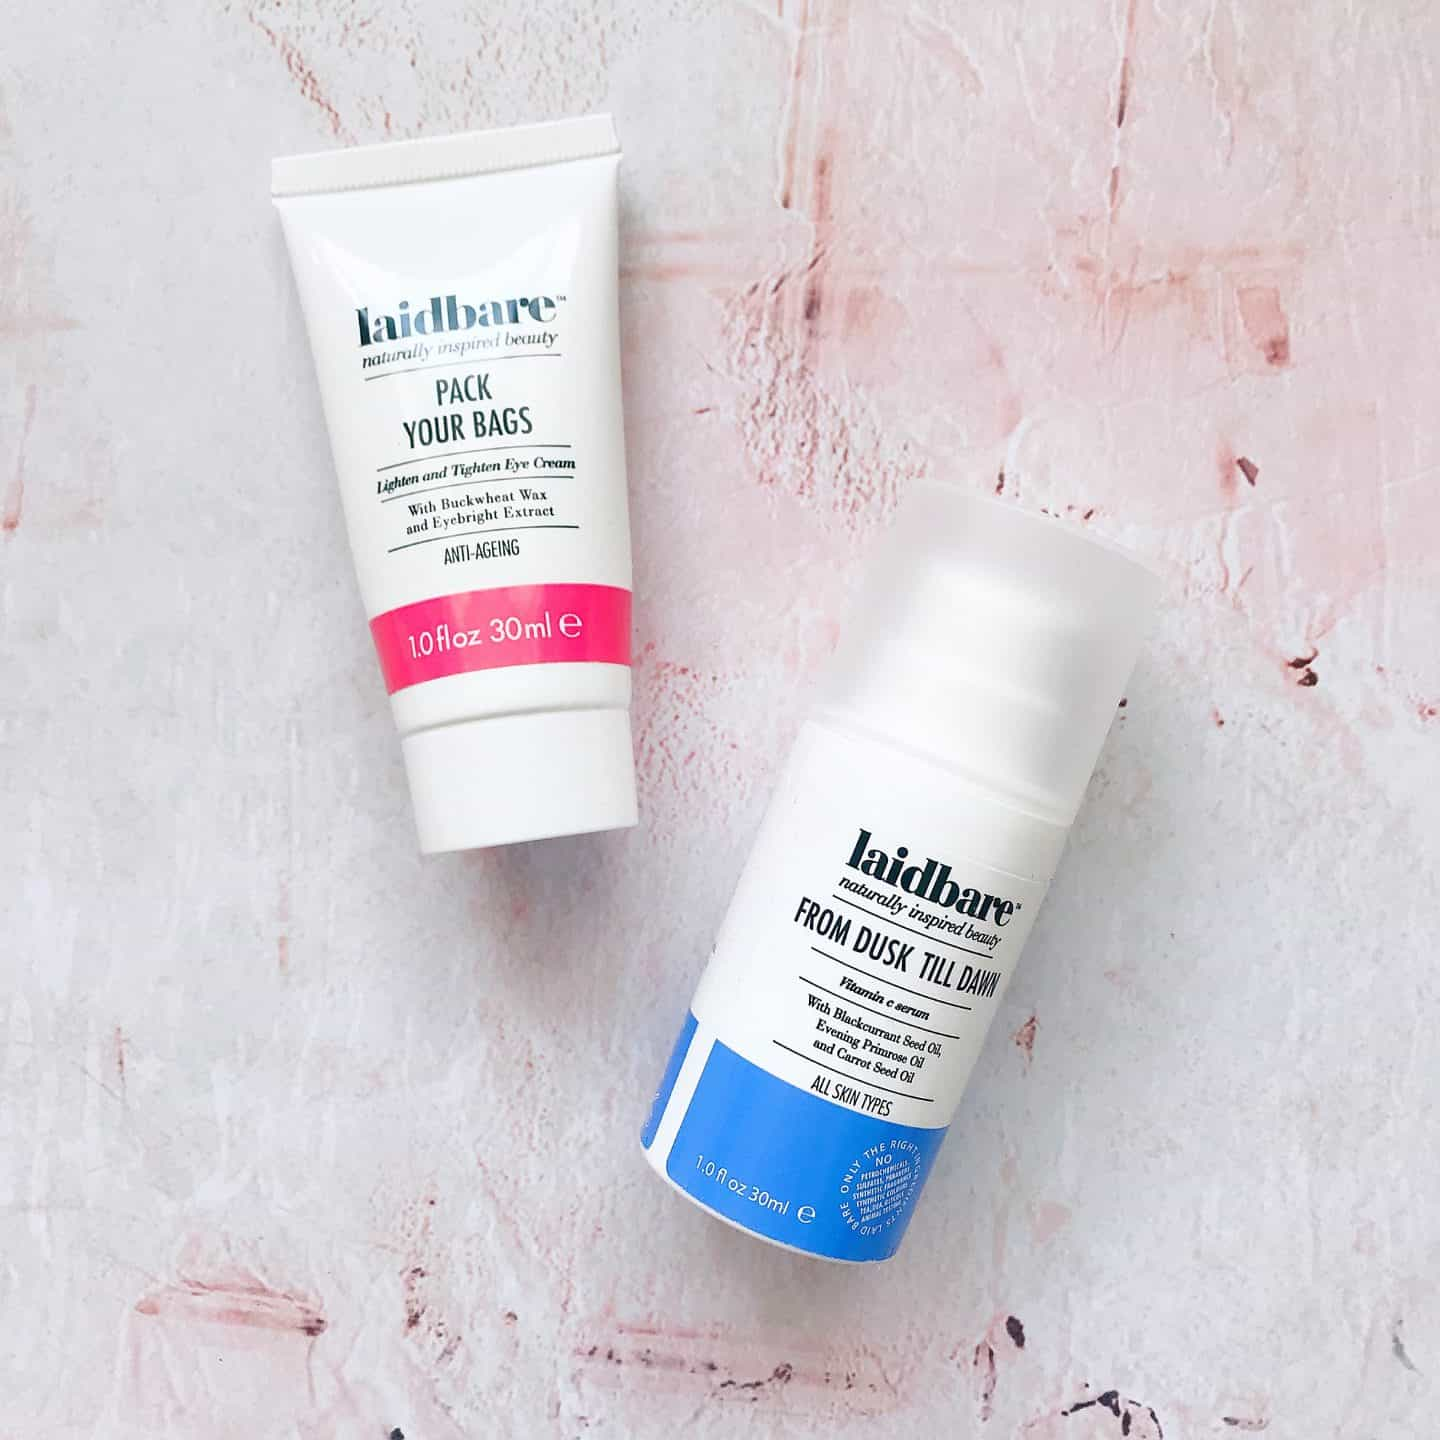 Laidbare clean skincare Pack Your Bags and From Dusk Till Dawn review